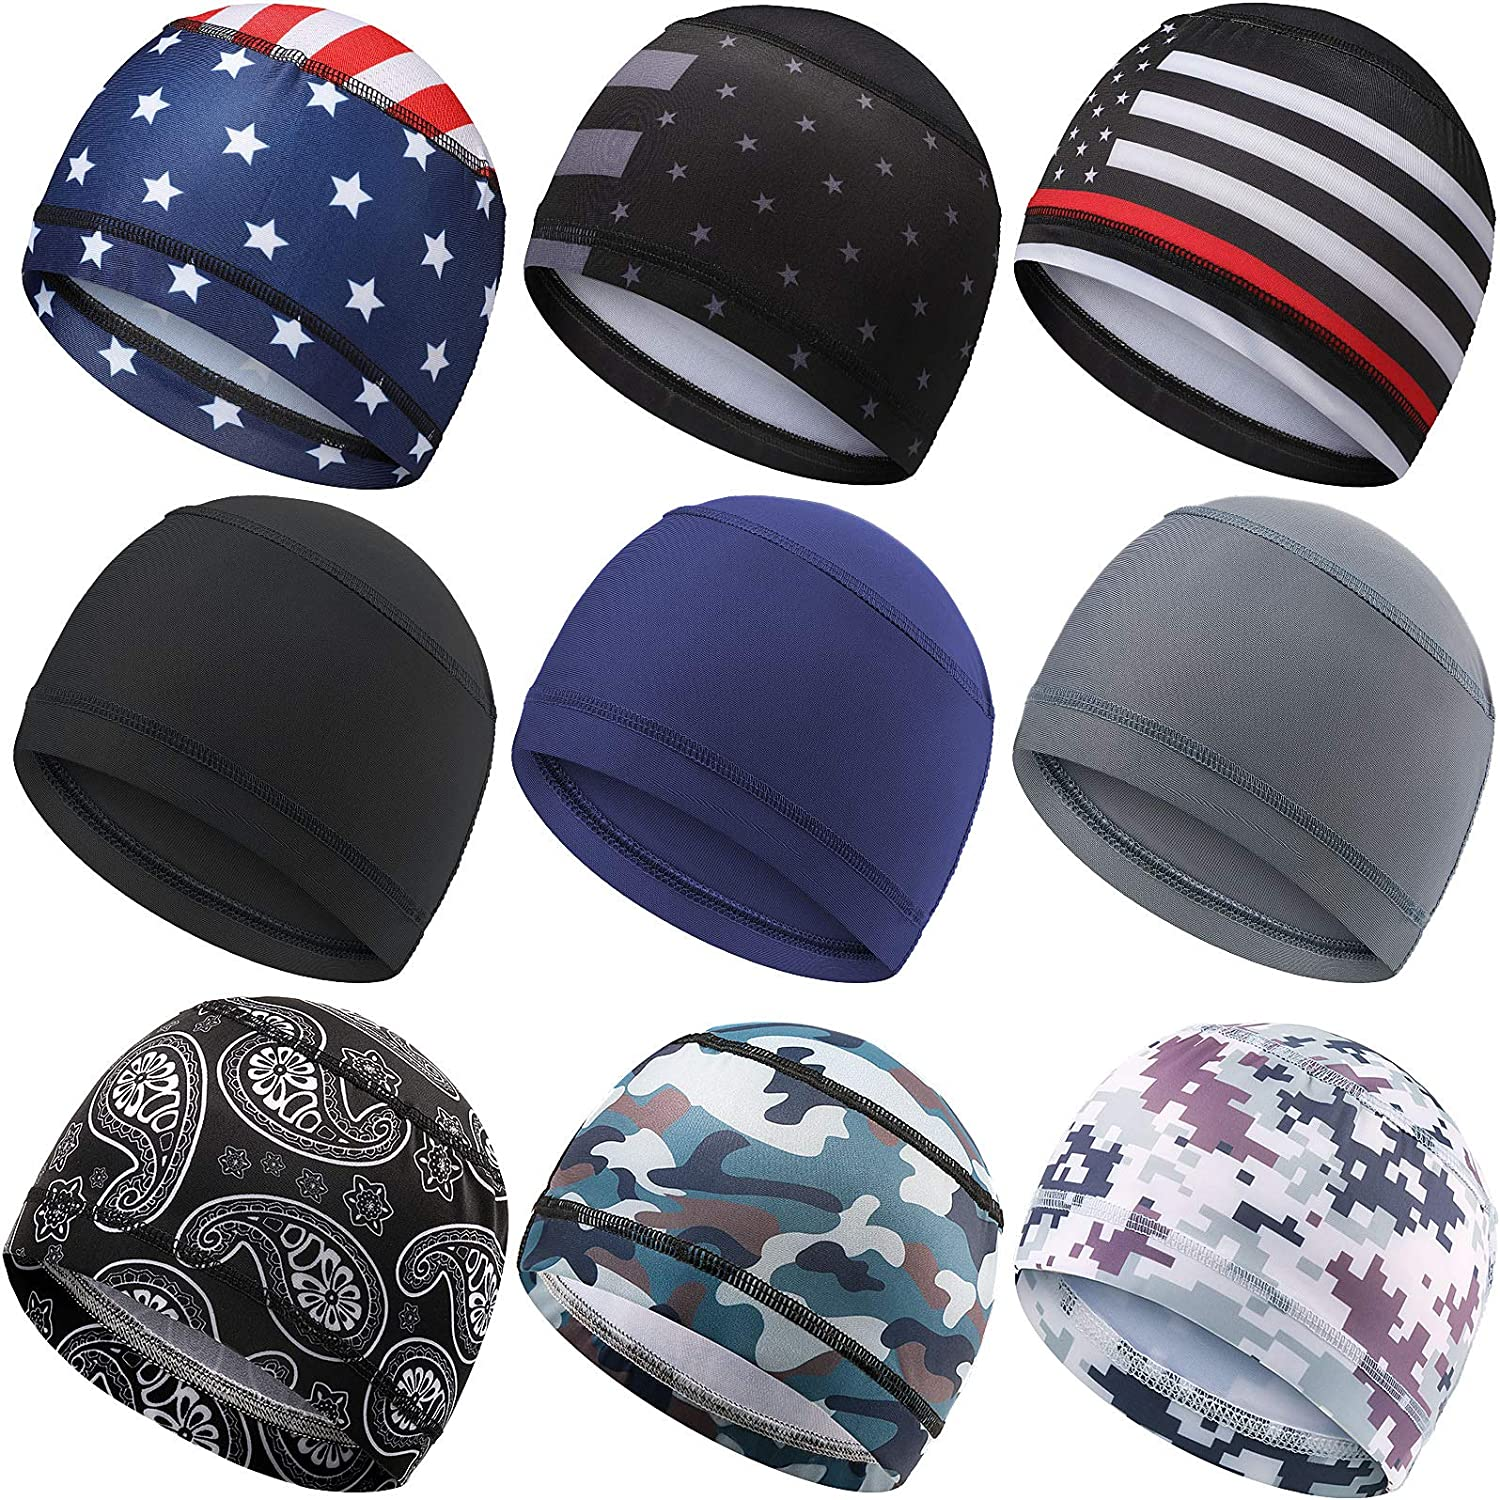 9 Colors 9 Pieces Cooling Skull Caps Helmet Liner Beanie Cap Sweat Wicking Cycling Hat for Men and Women Running Motorcycle Sports